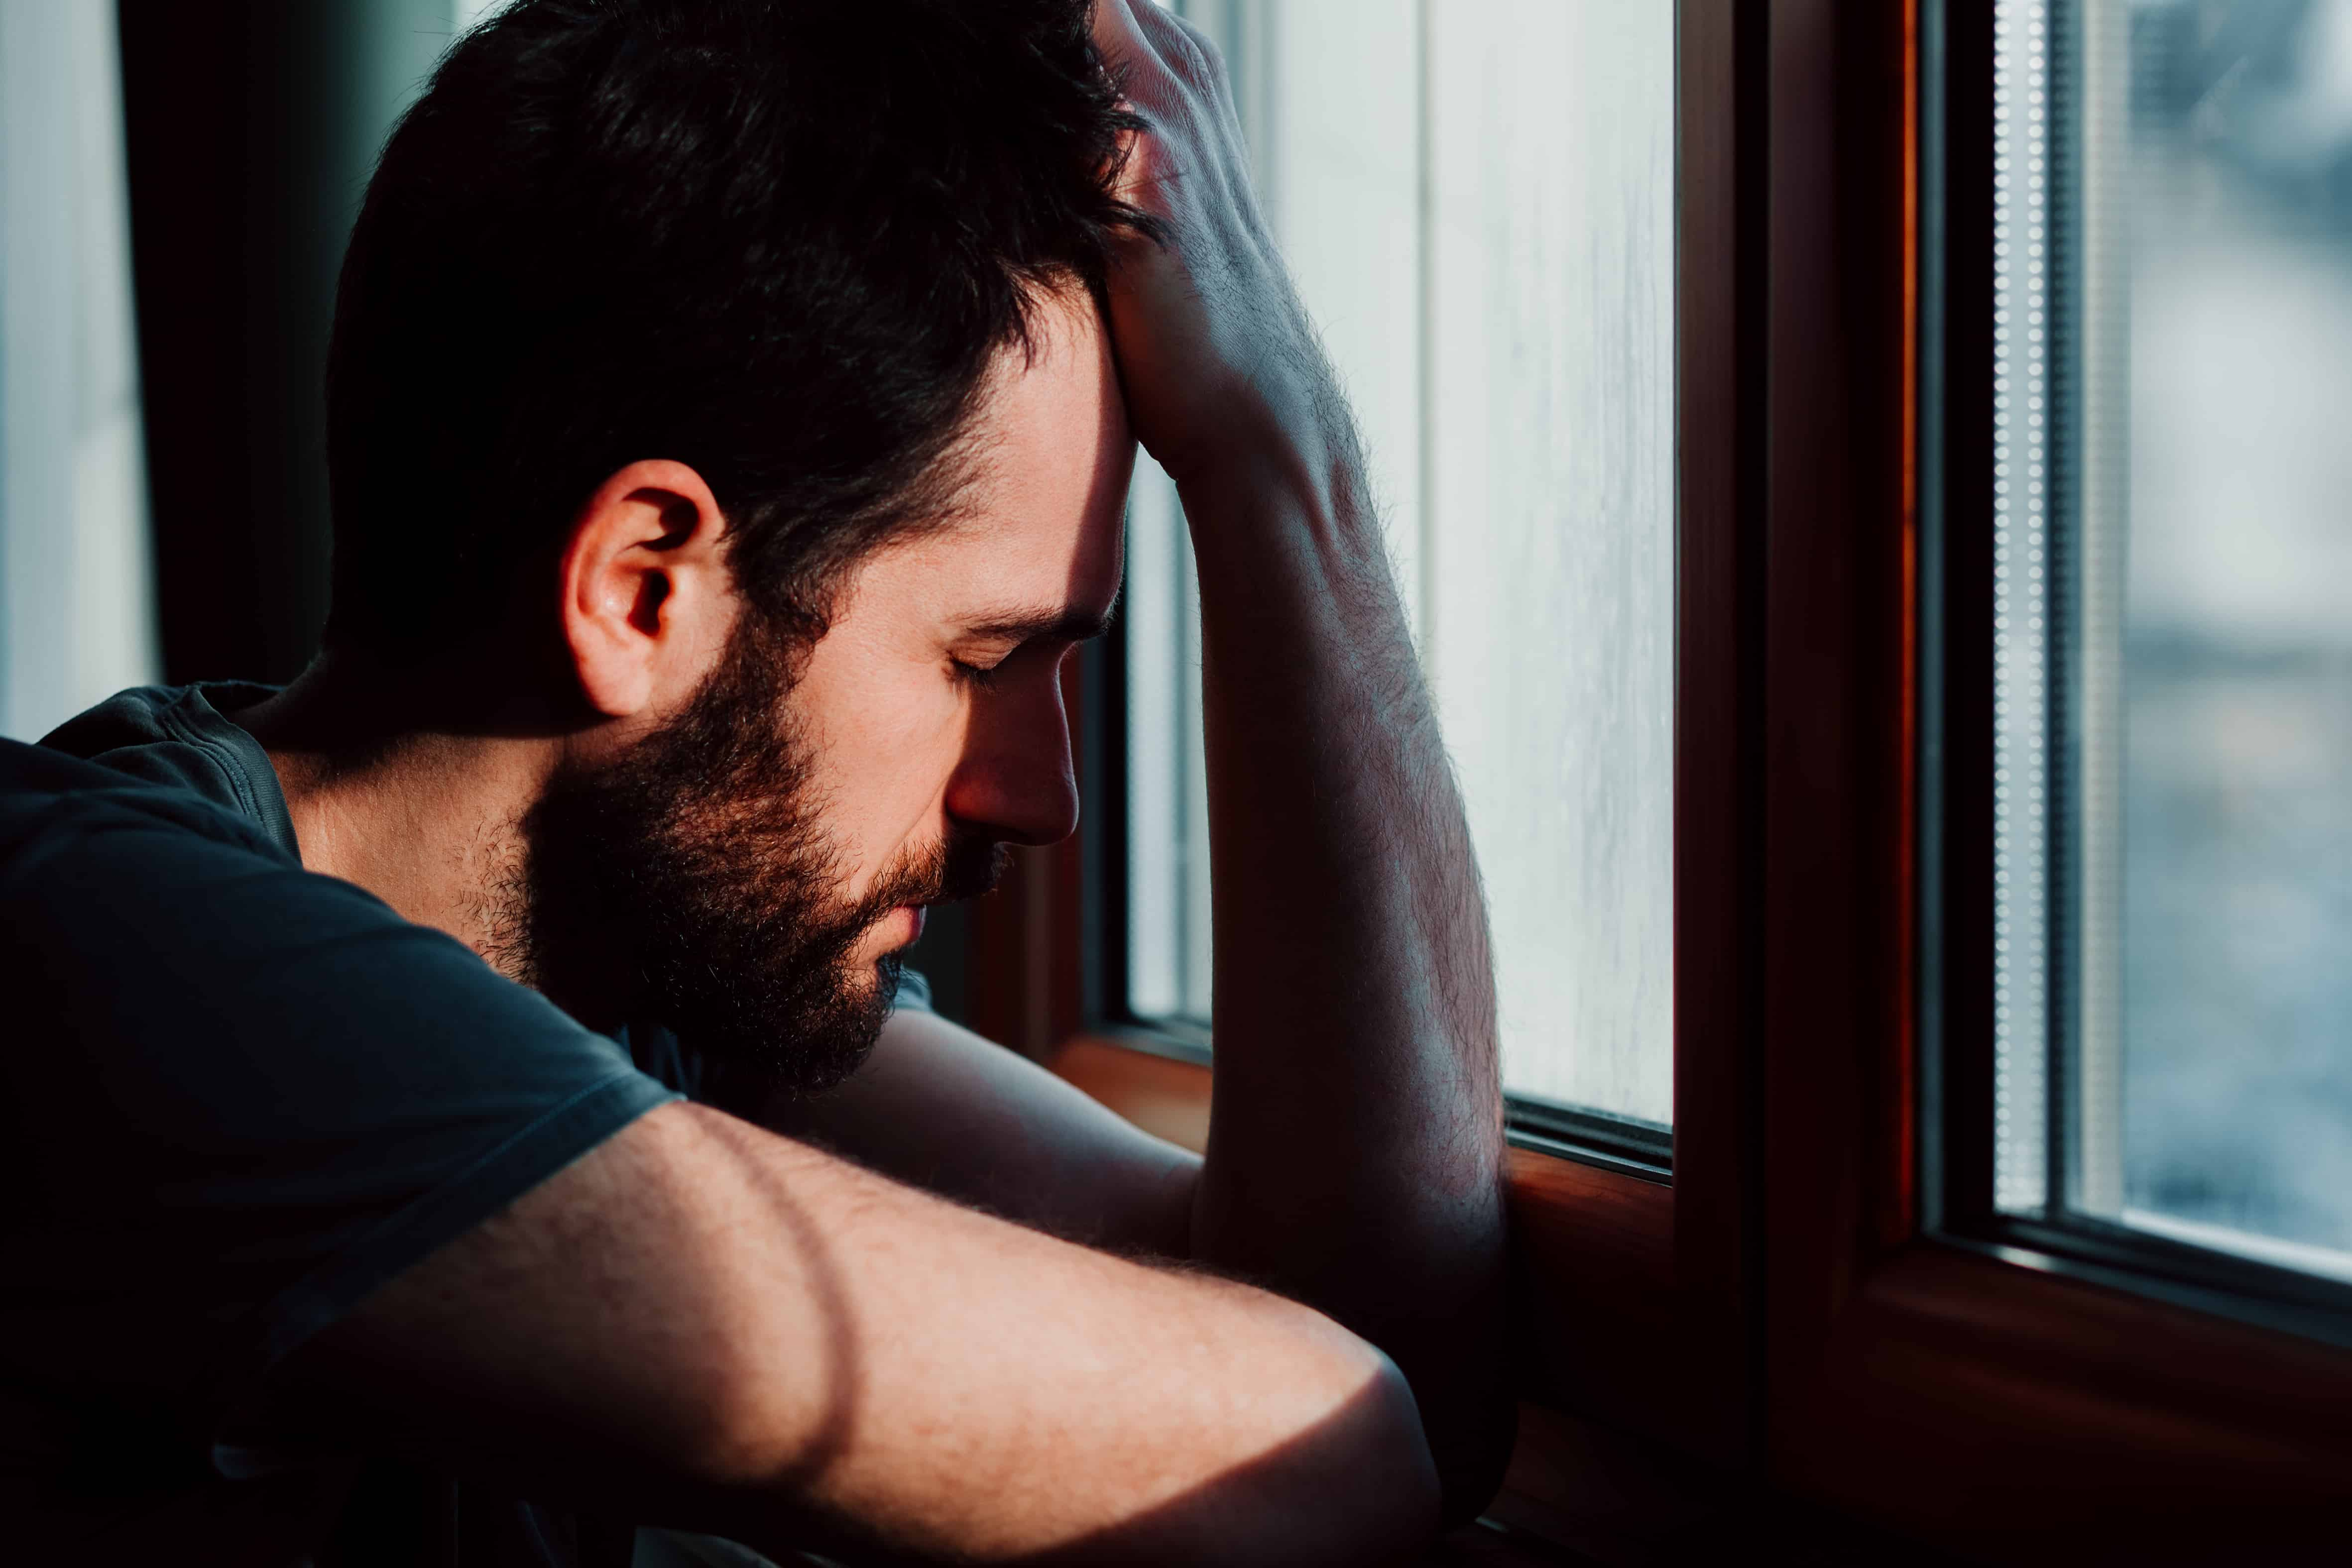 You're in a very tough season as a leader. How do you talk yourself through it? Here's how to beat the three p's of discouragement.